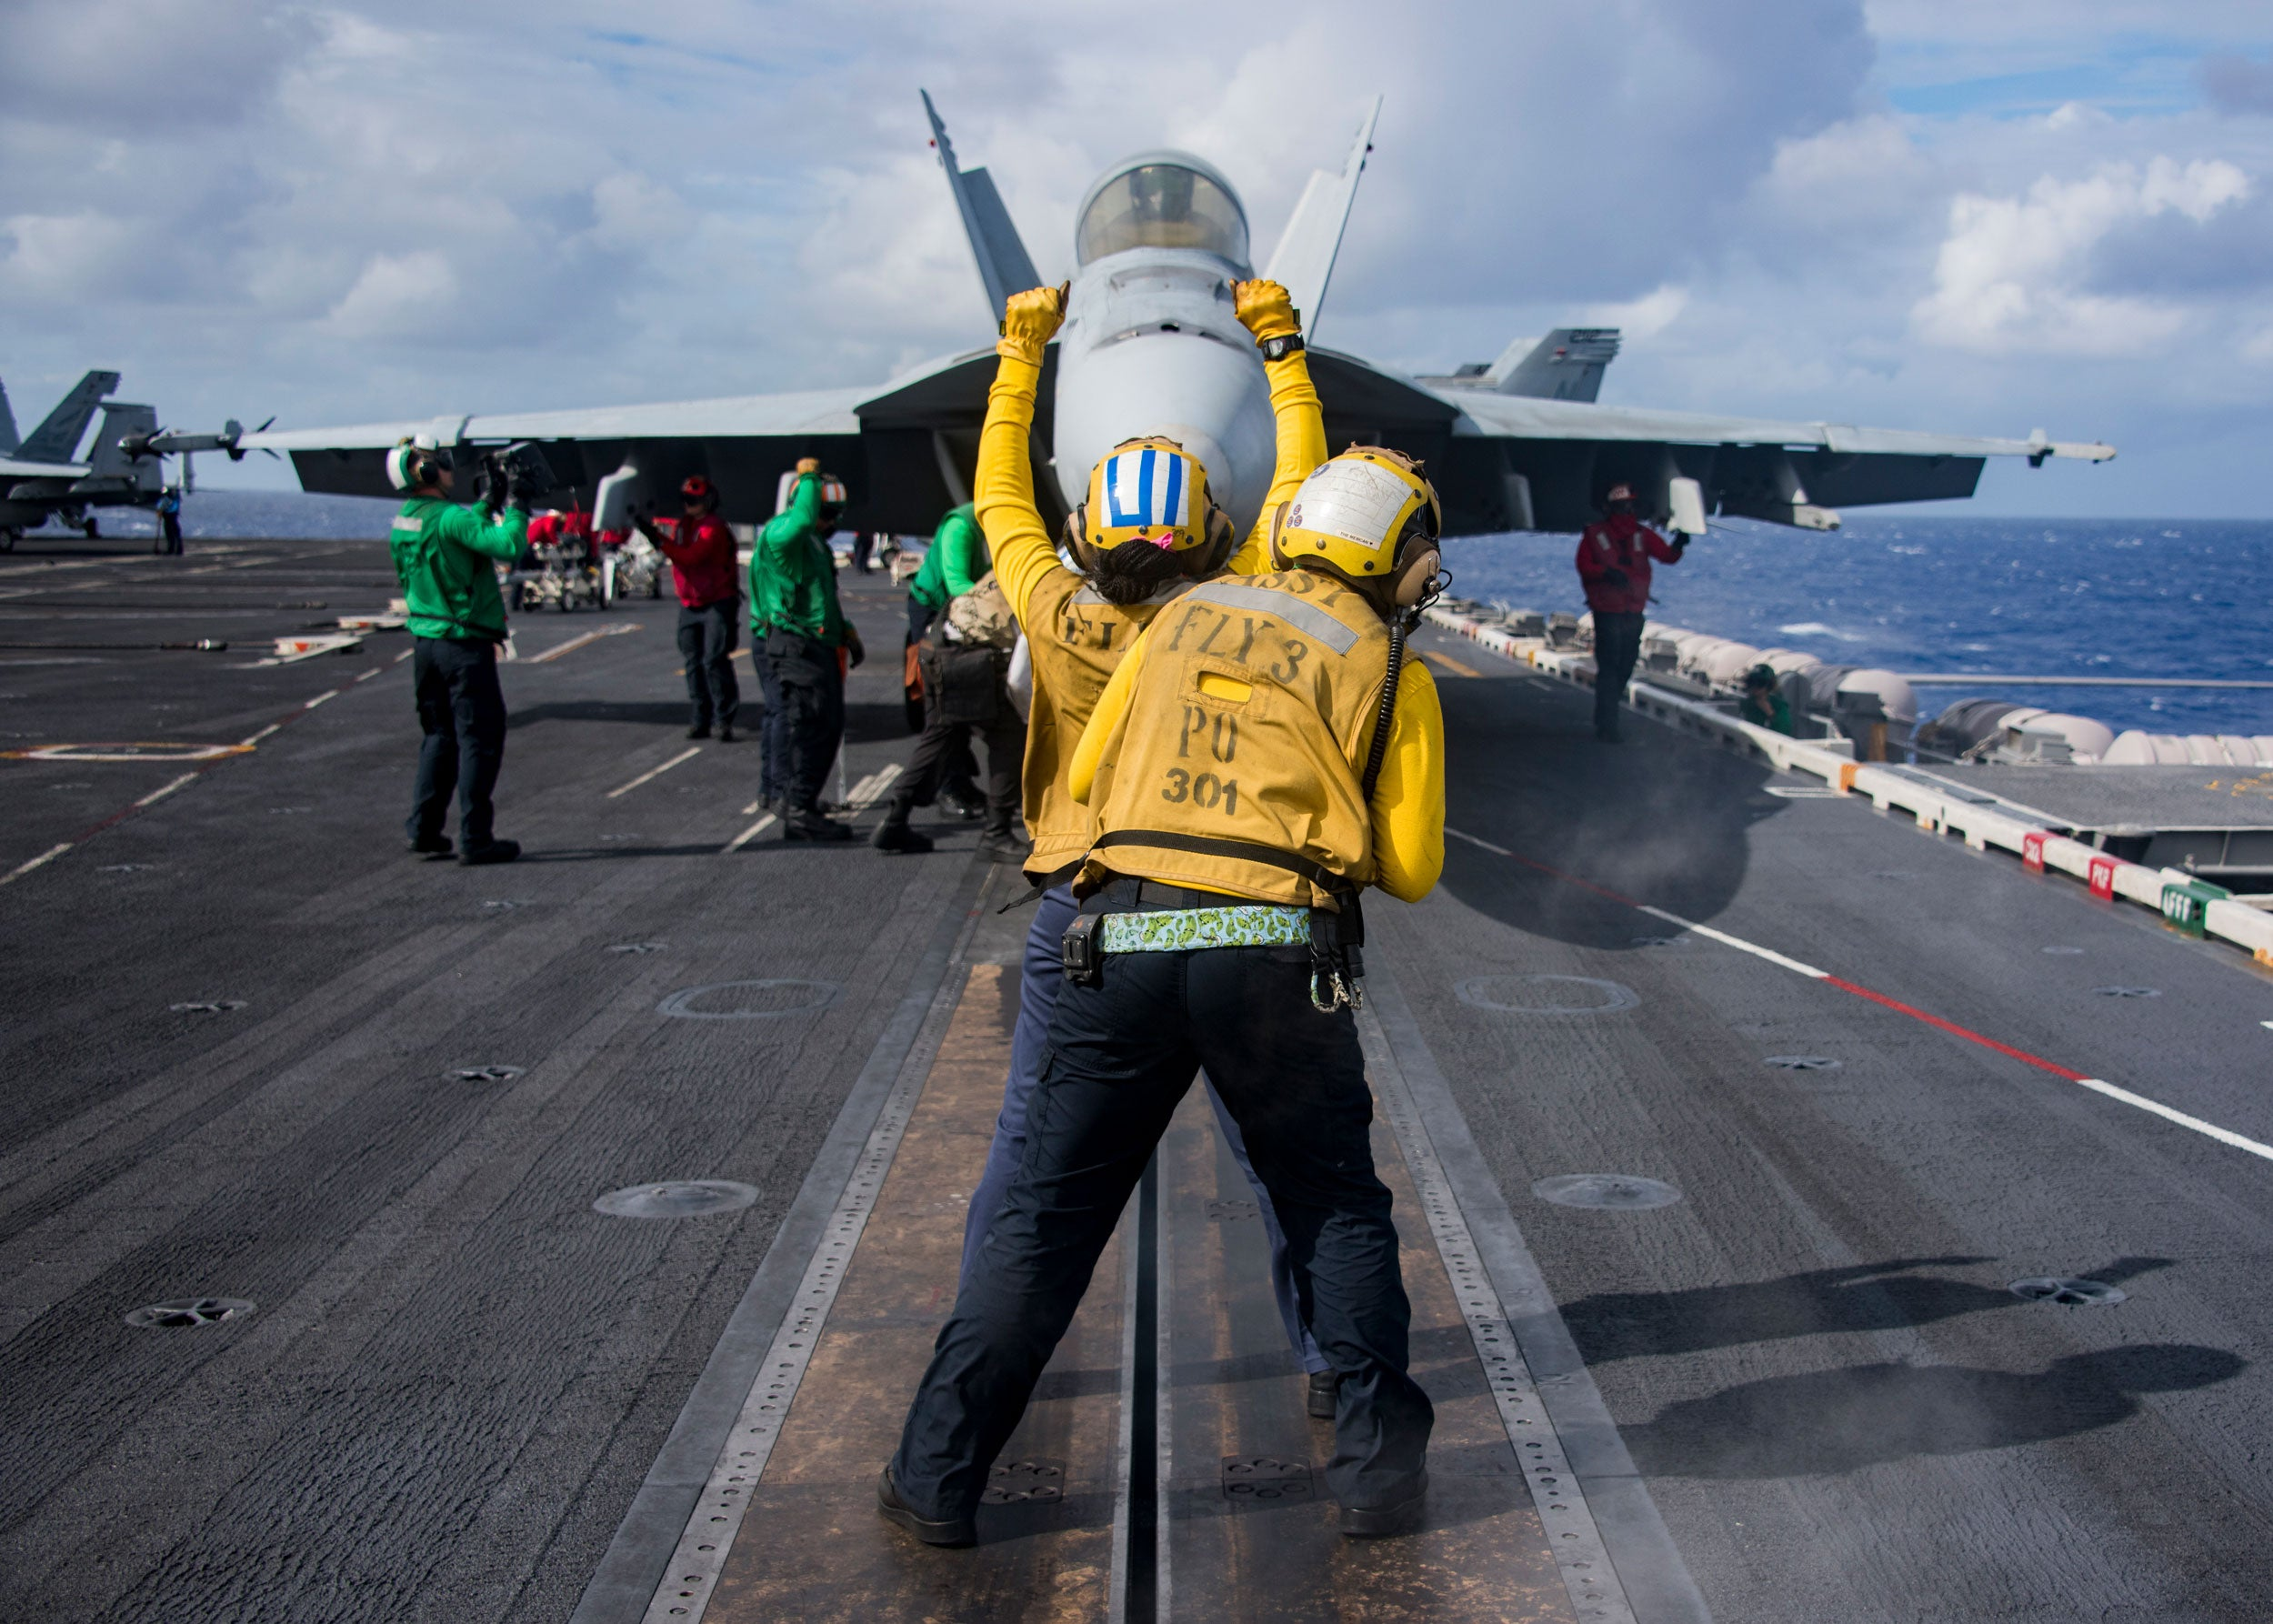 An F/A-18 Hornet prepares for takeoff on a U.S. carrier. (Photo: Petty Officer 3rd Class Sean Castellano)